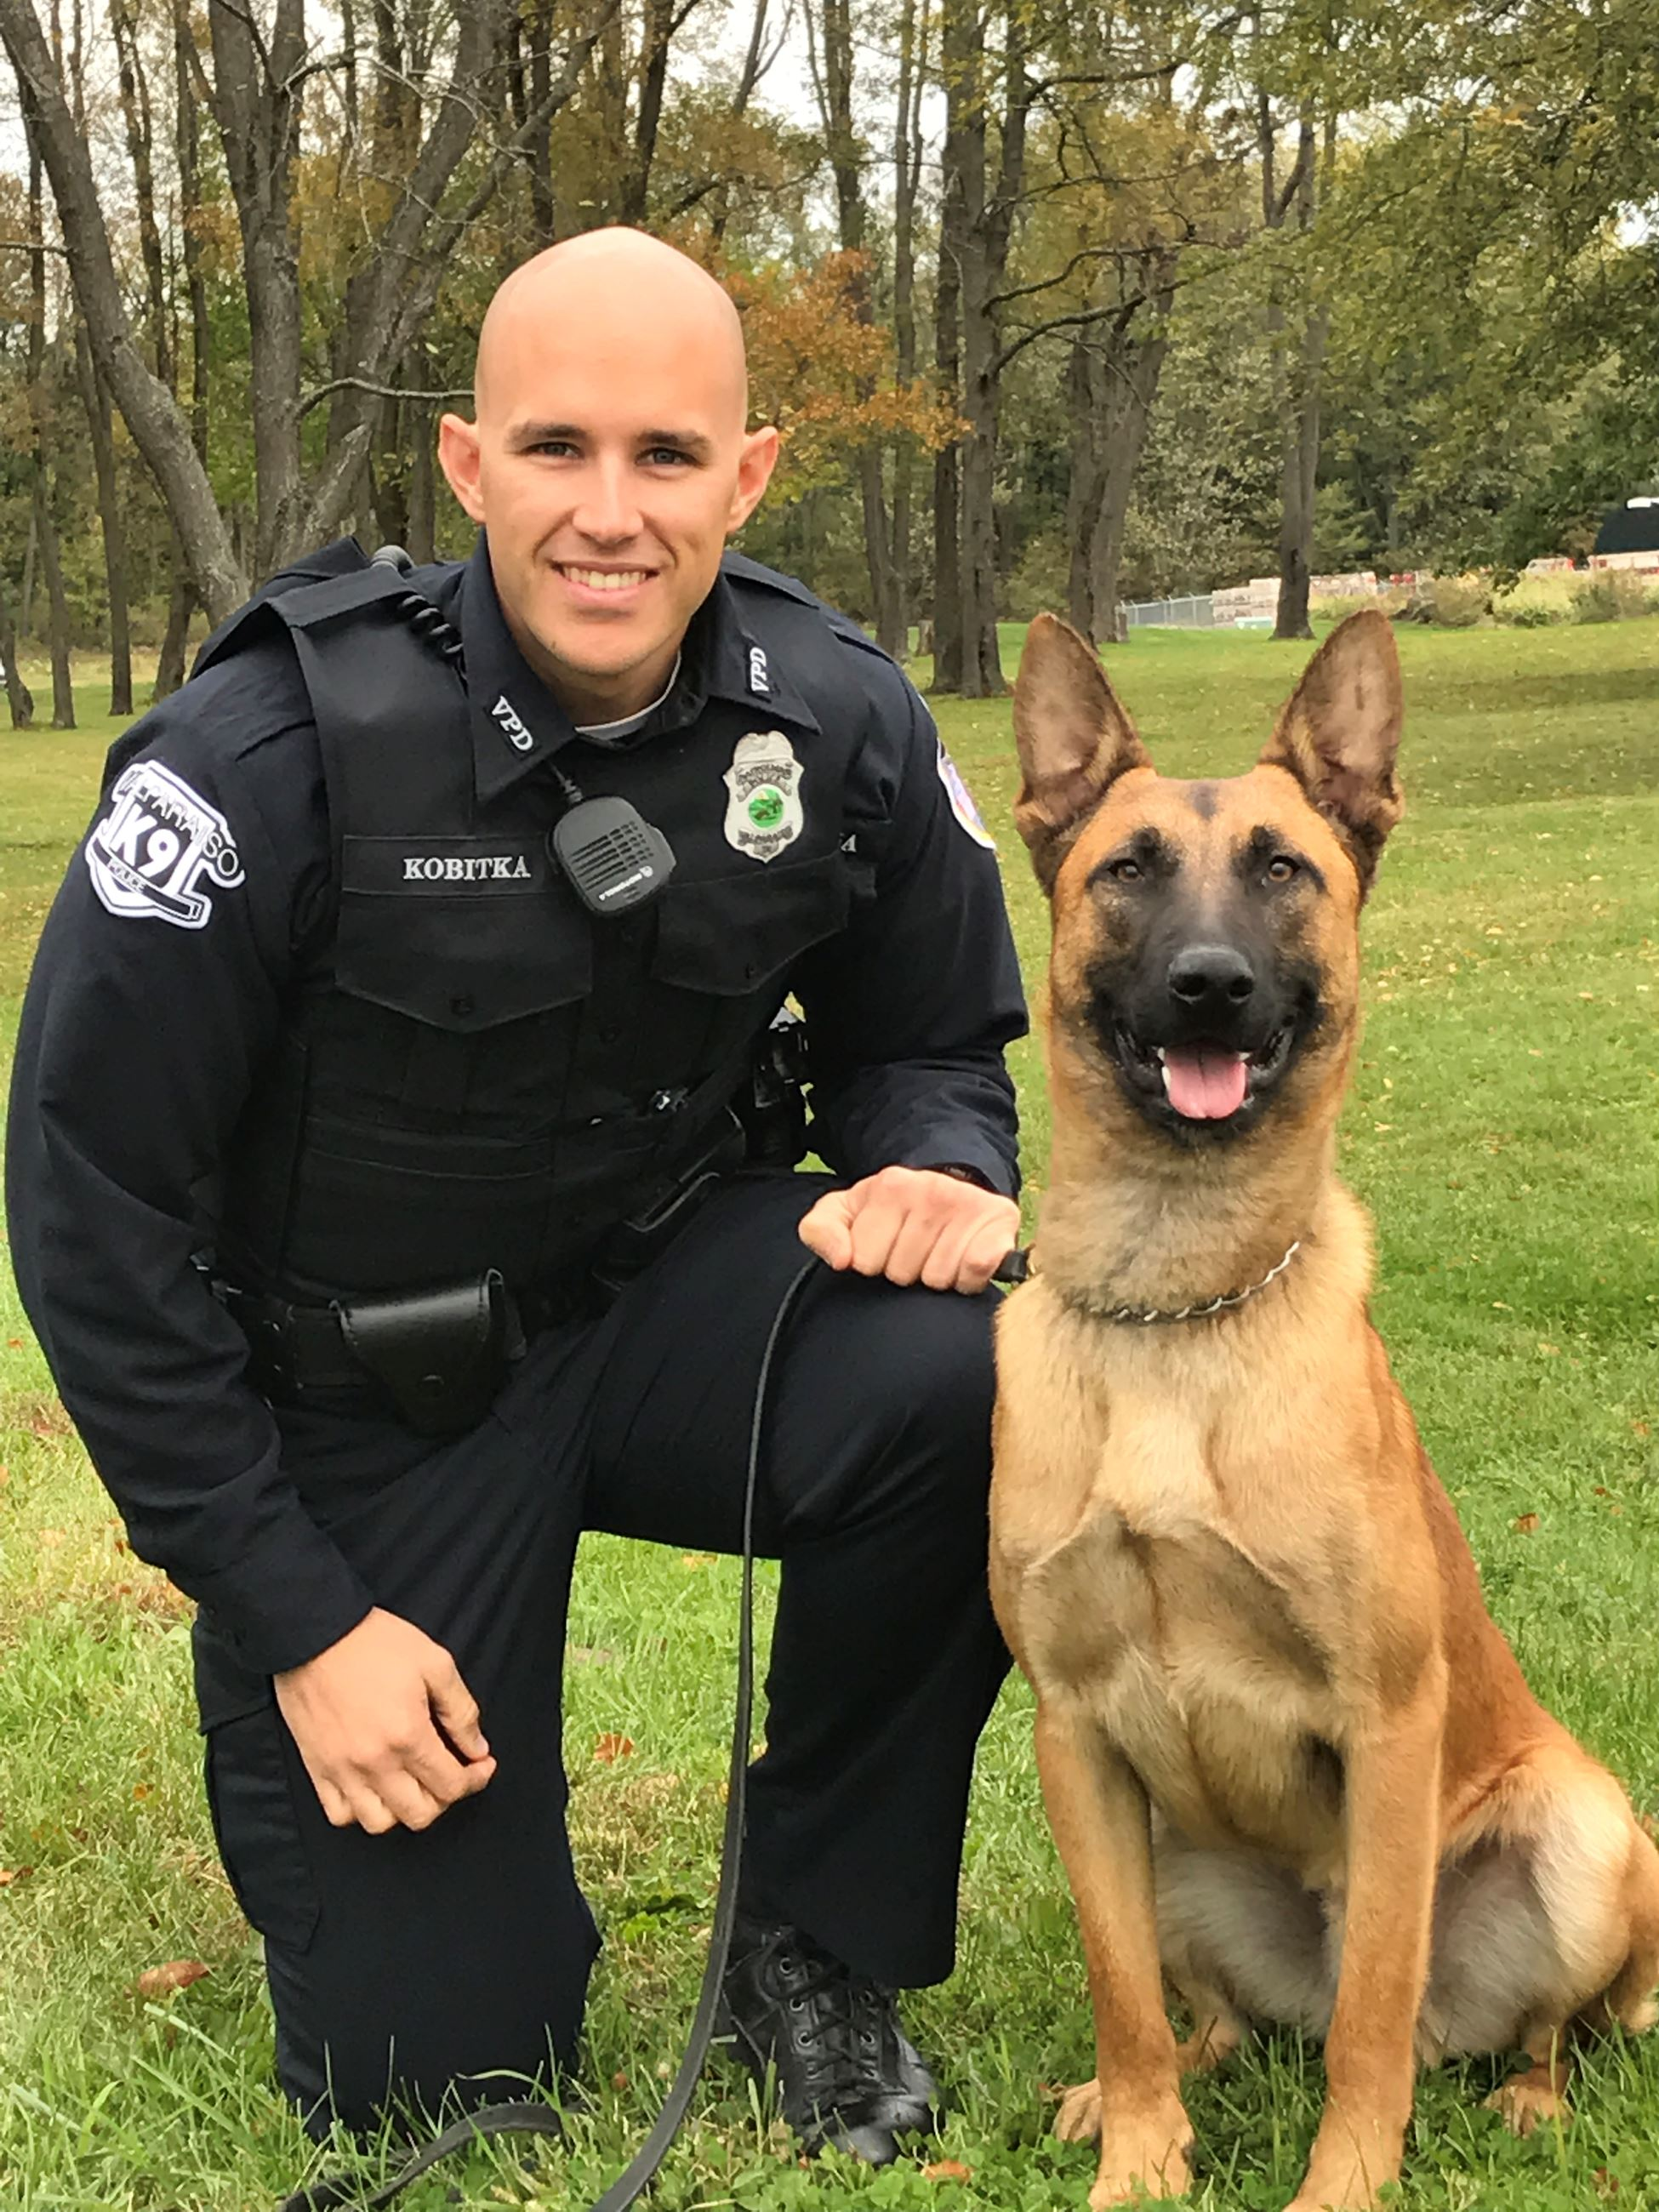 Officer Kobitka and Kaiser